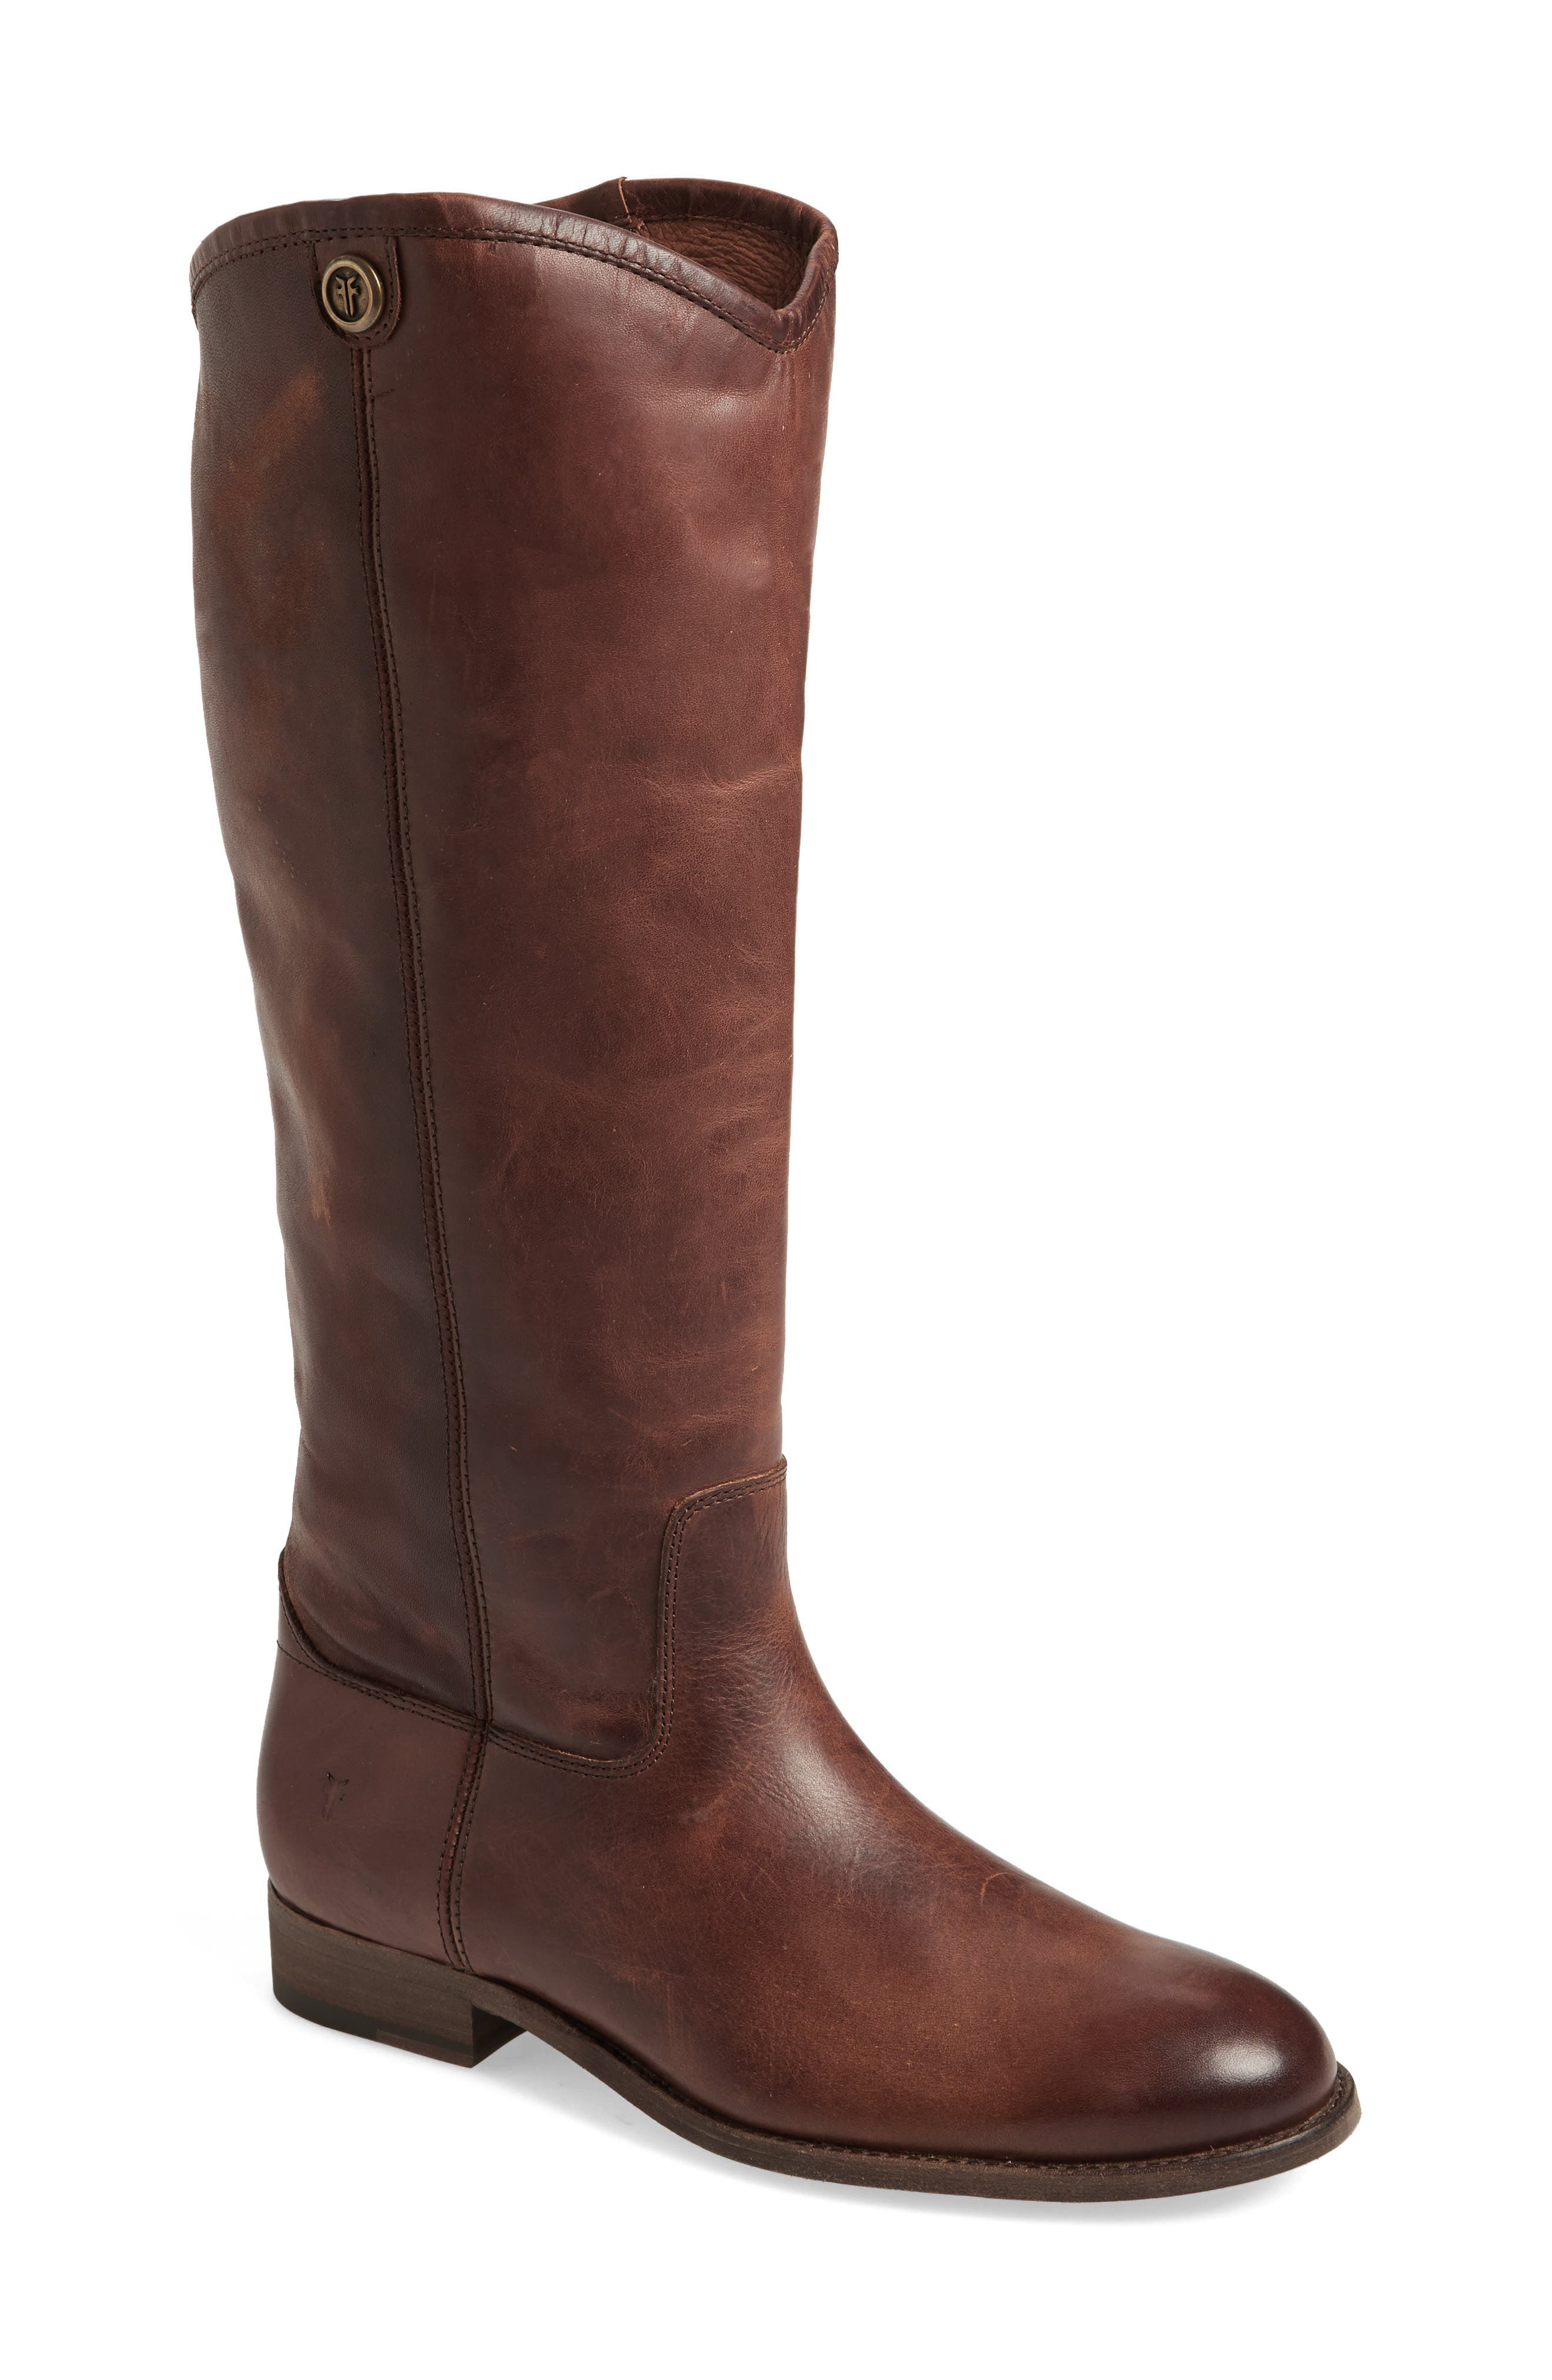 Frye Melissa Button 2 Knee High Boot Regular Calf- Brown